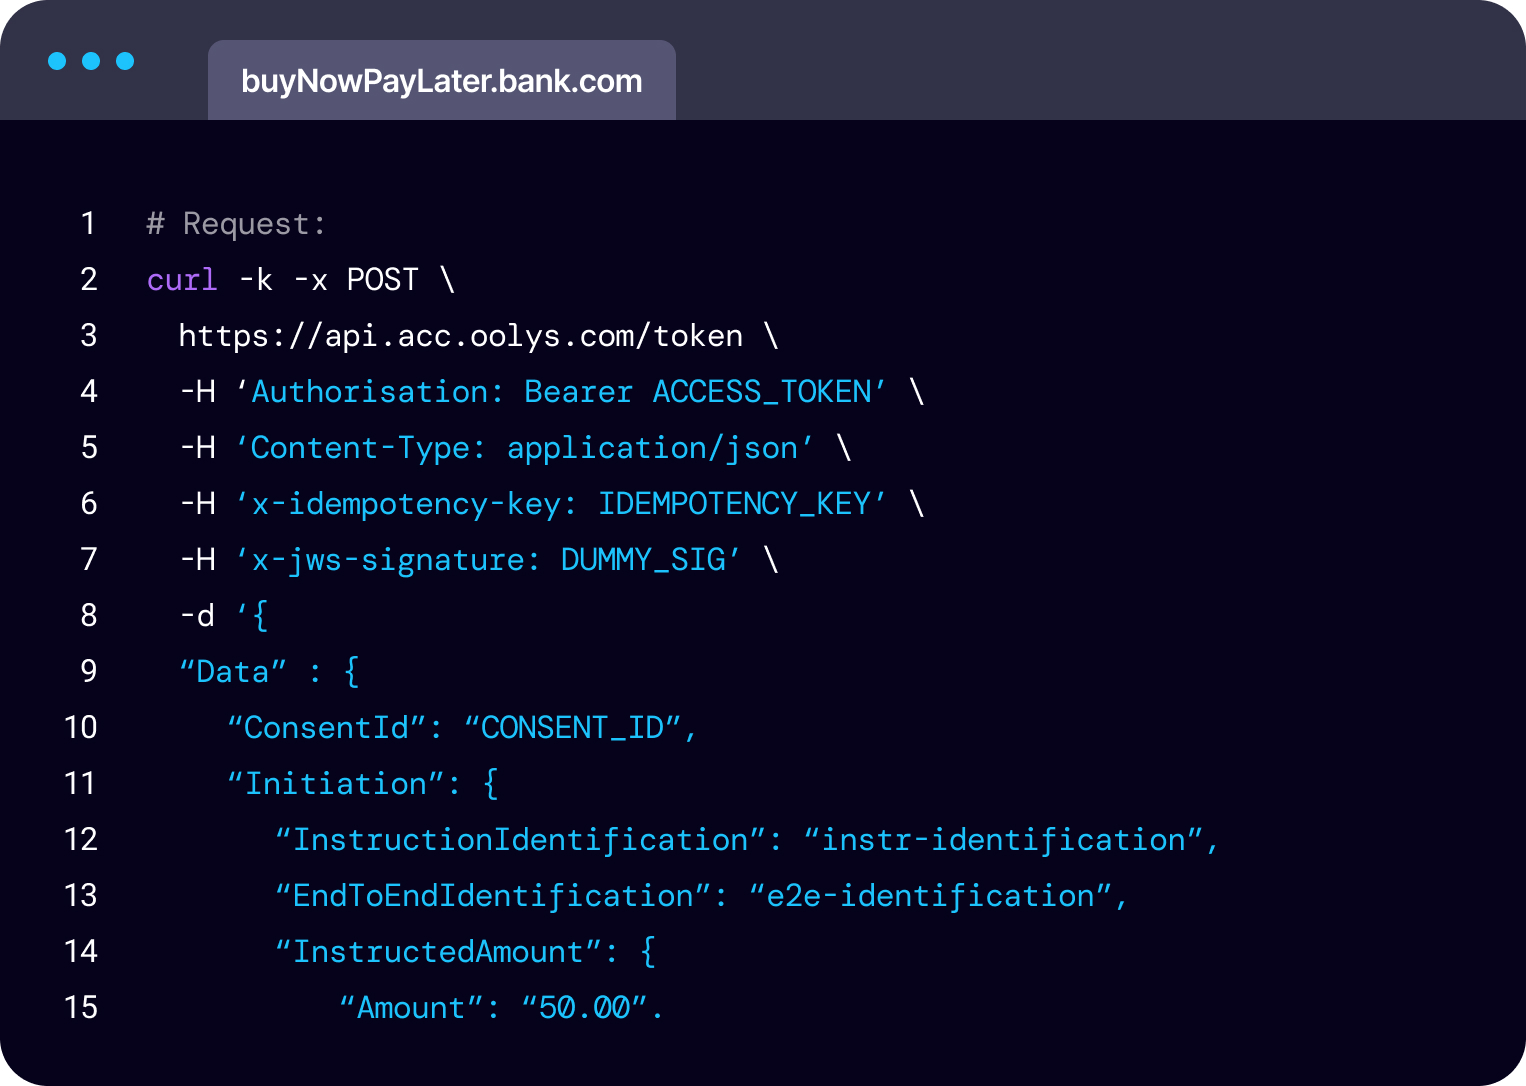 Code snippet demonstrating buy-now-pay-later requests being initiated via an API call